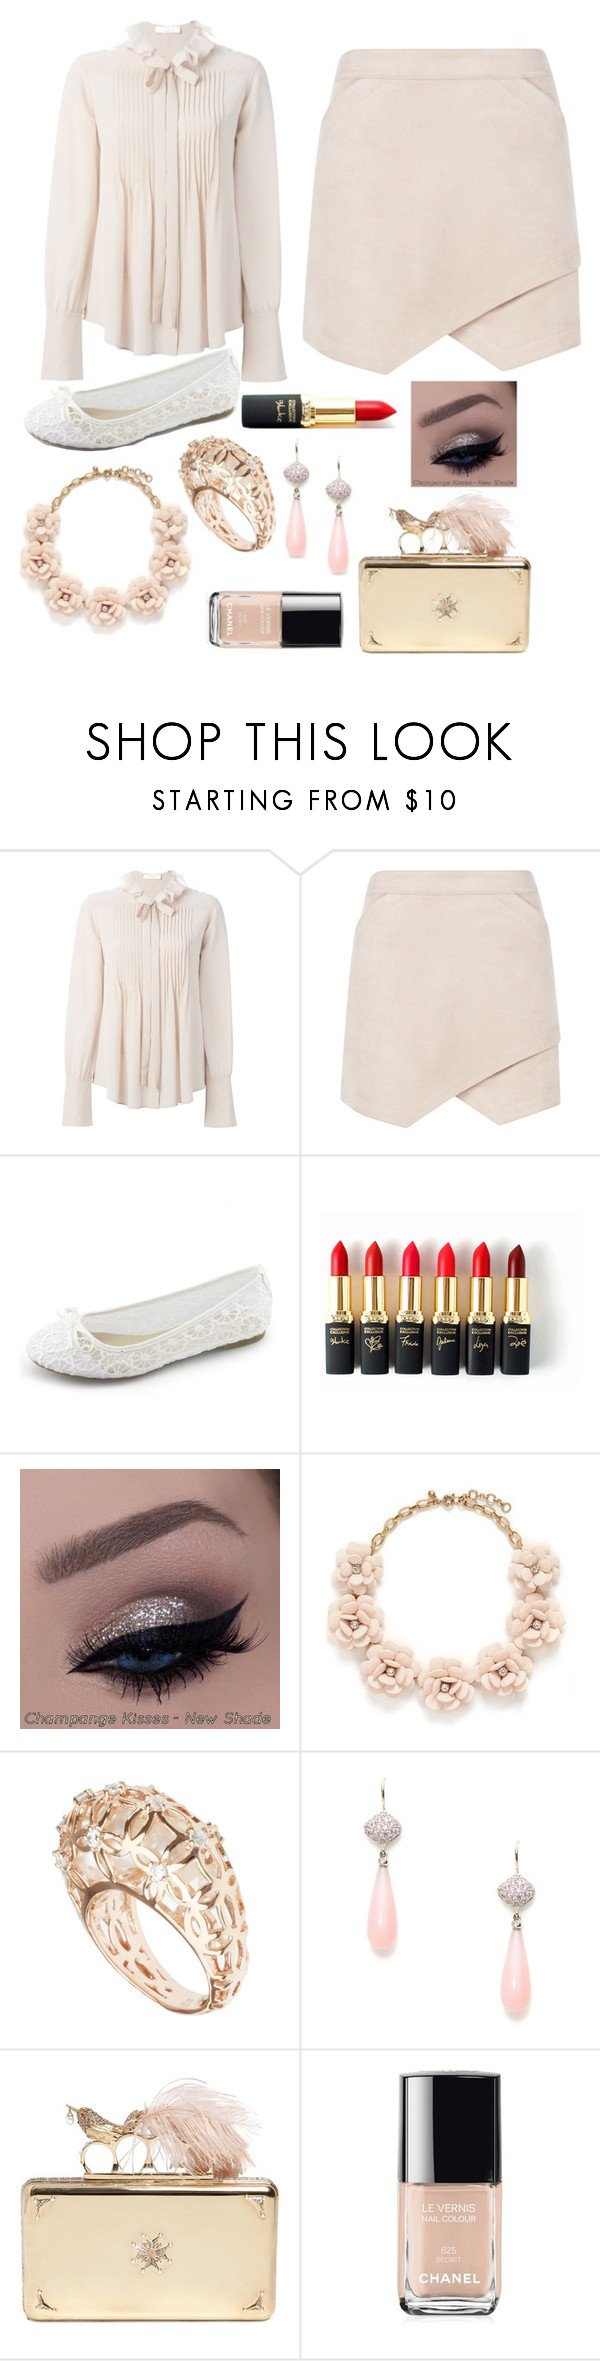 """Hard to See"" by puppydog28 ❤ liked on Polyvore featuring Chloé, BCBGMAXAZRIA, L'Oréal Paris, J.Crew, Michael Valitutti, Jane Taylor, Alexander McQueen, Chanel, women's clothing and women"